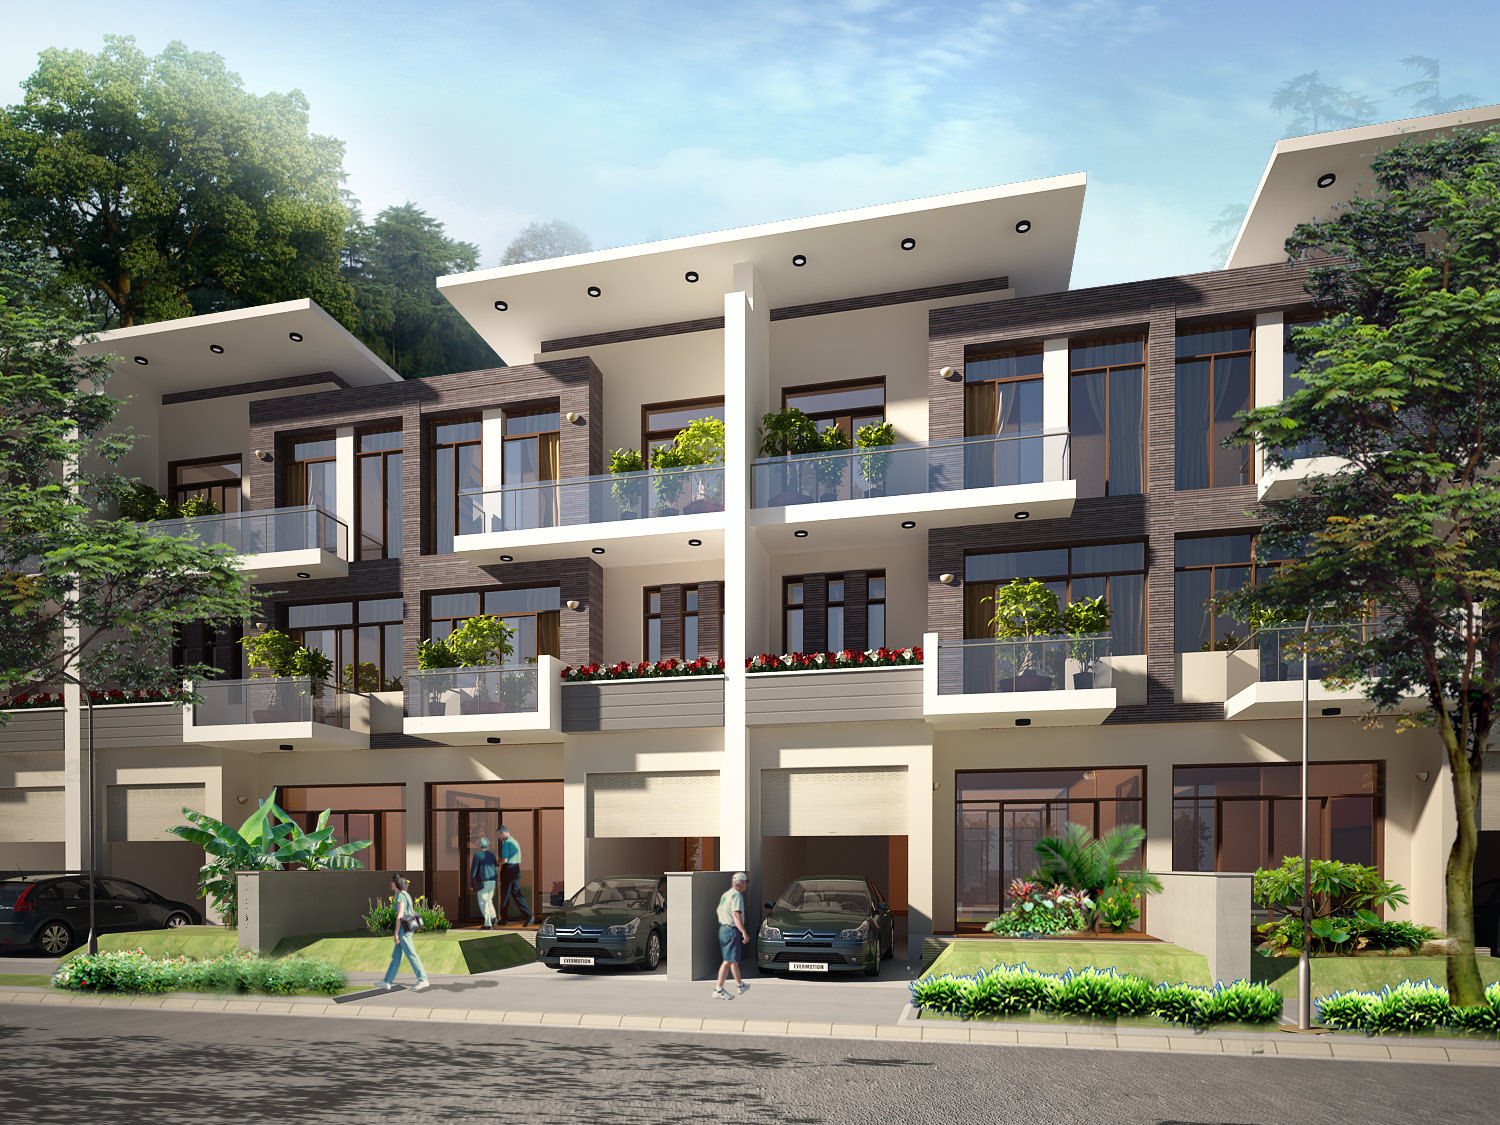 3d models contemporary multi story house 3d model max for 3d model of house